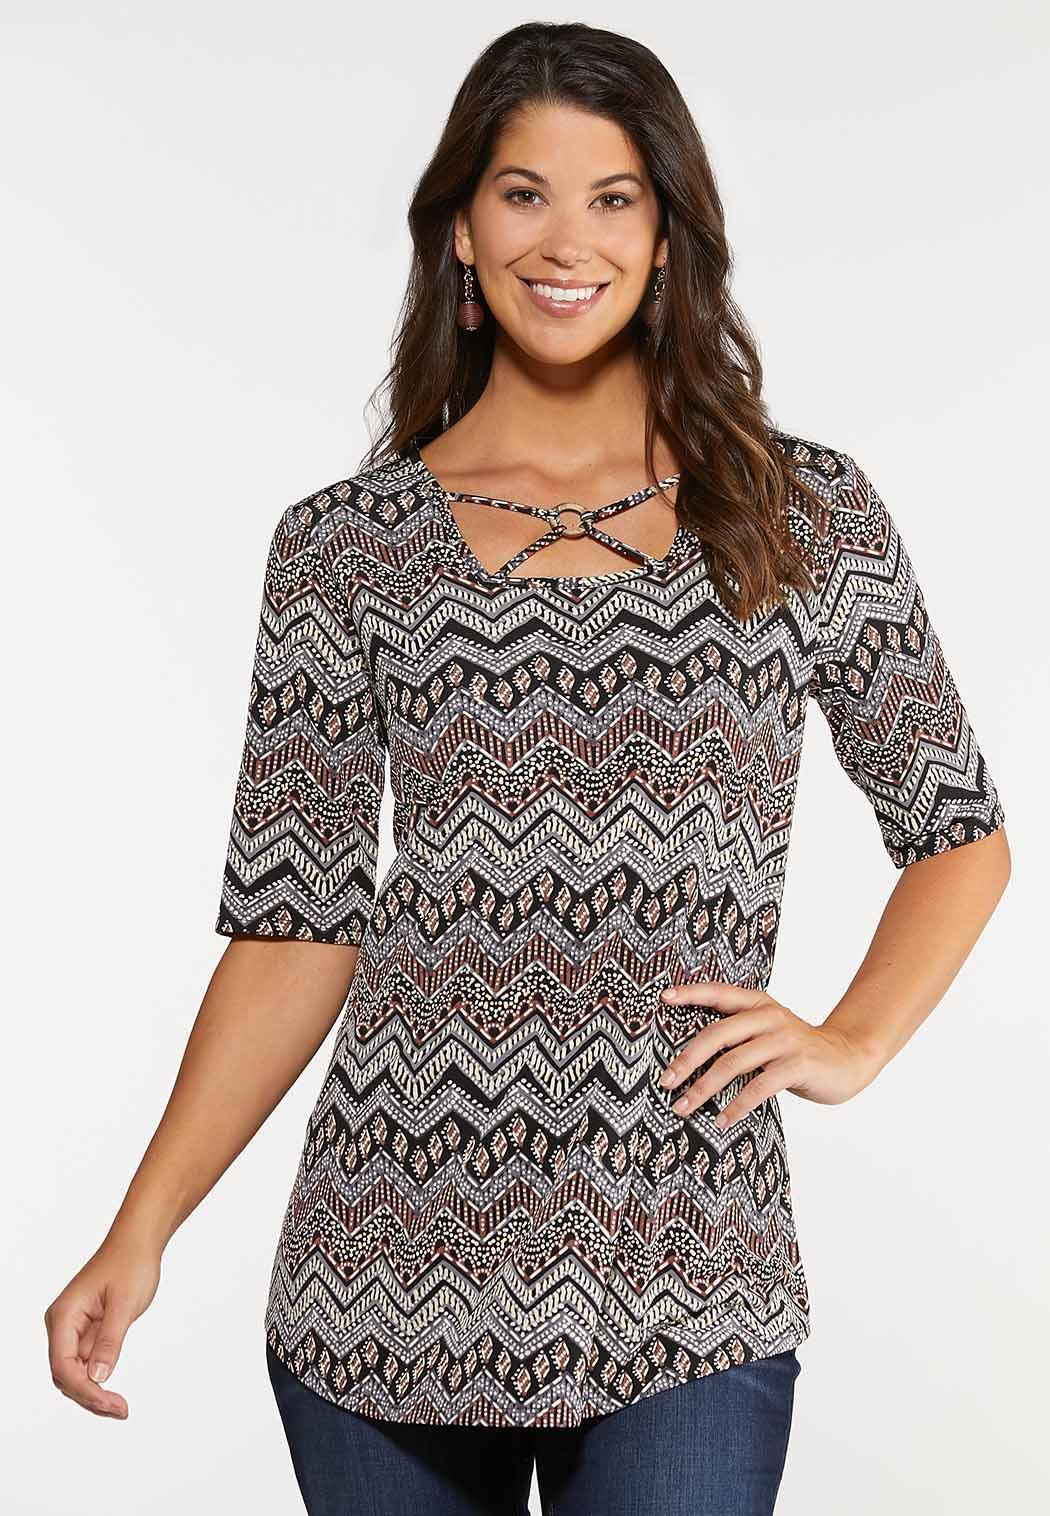 Aztec Criss Cross Top